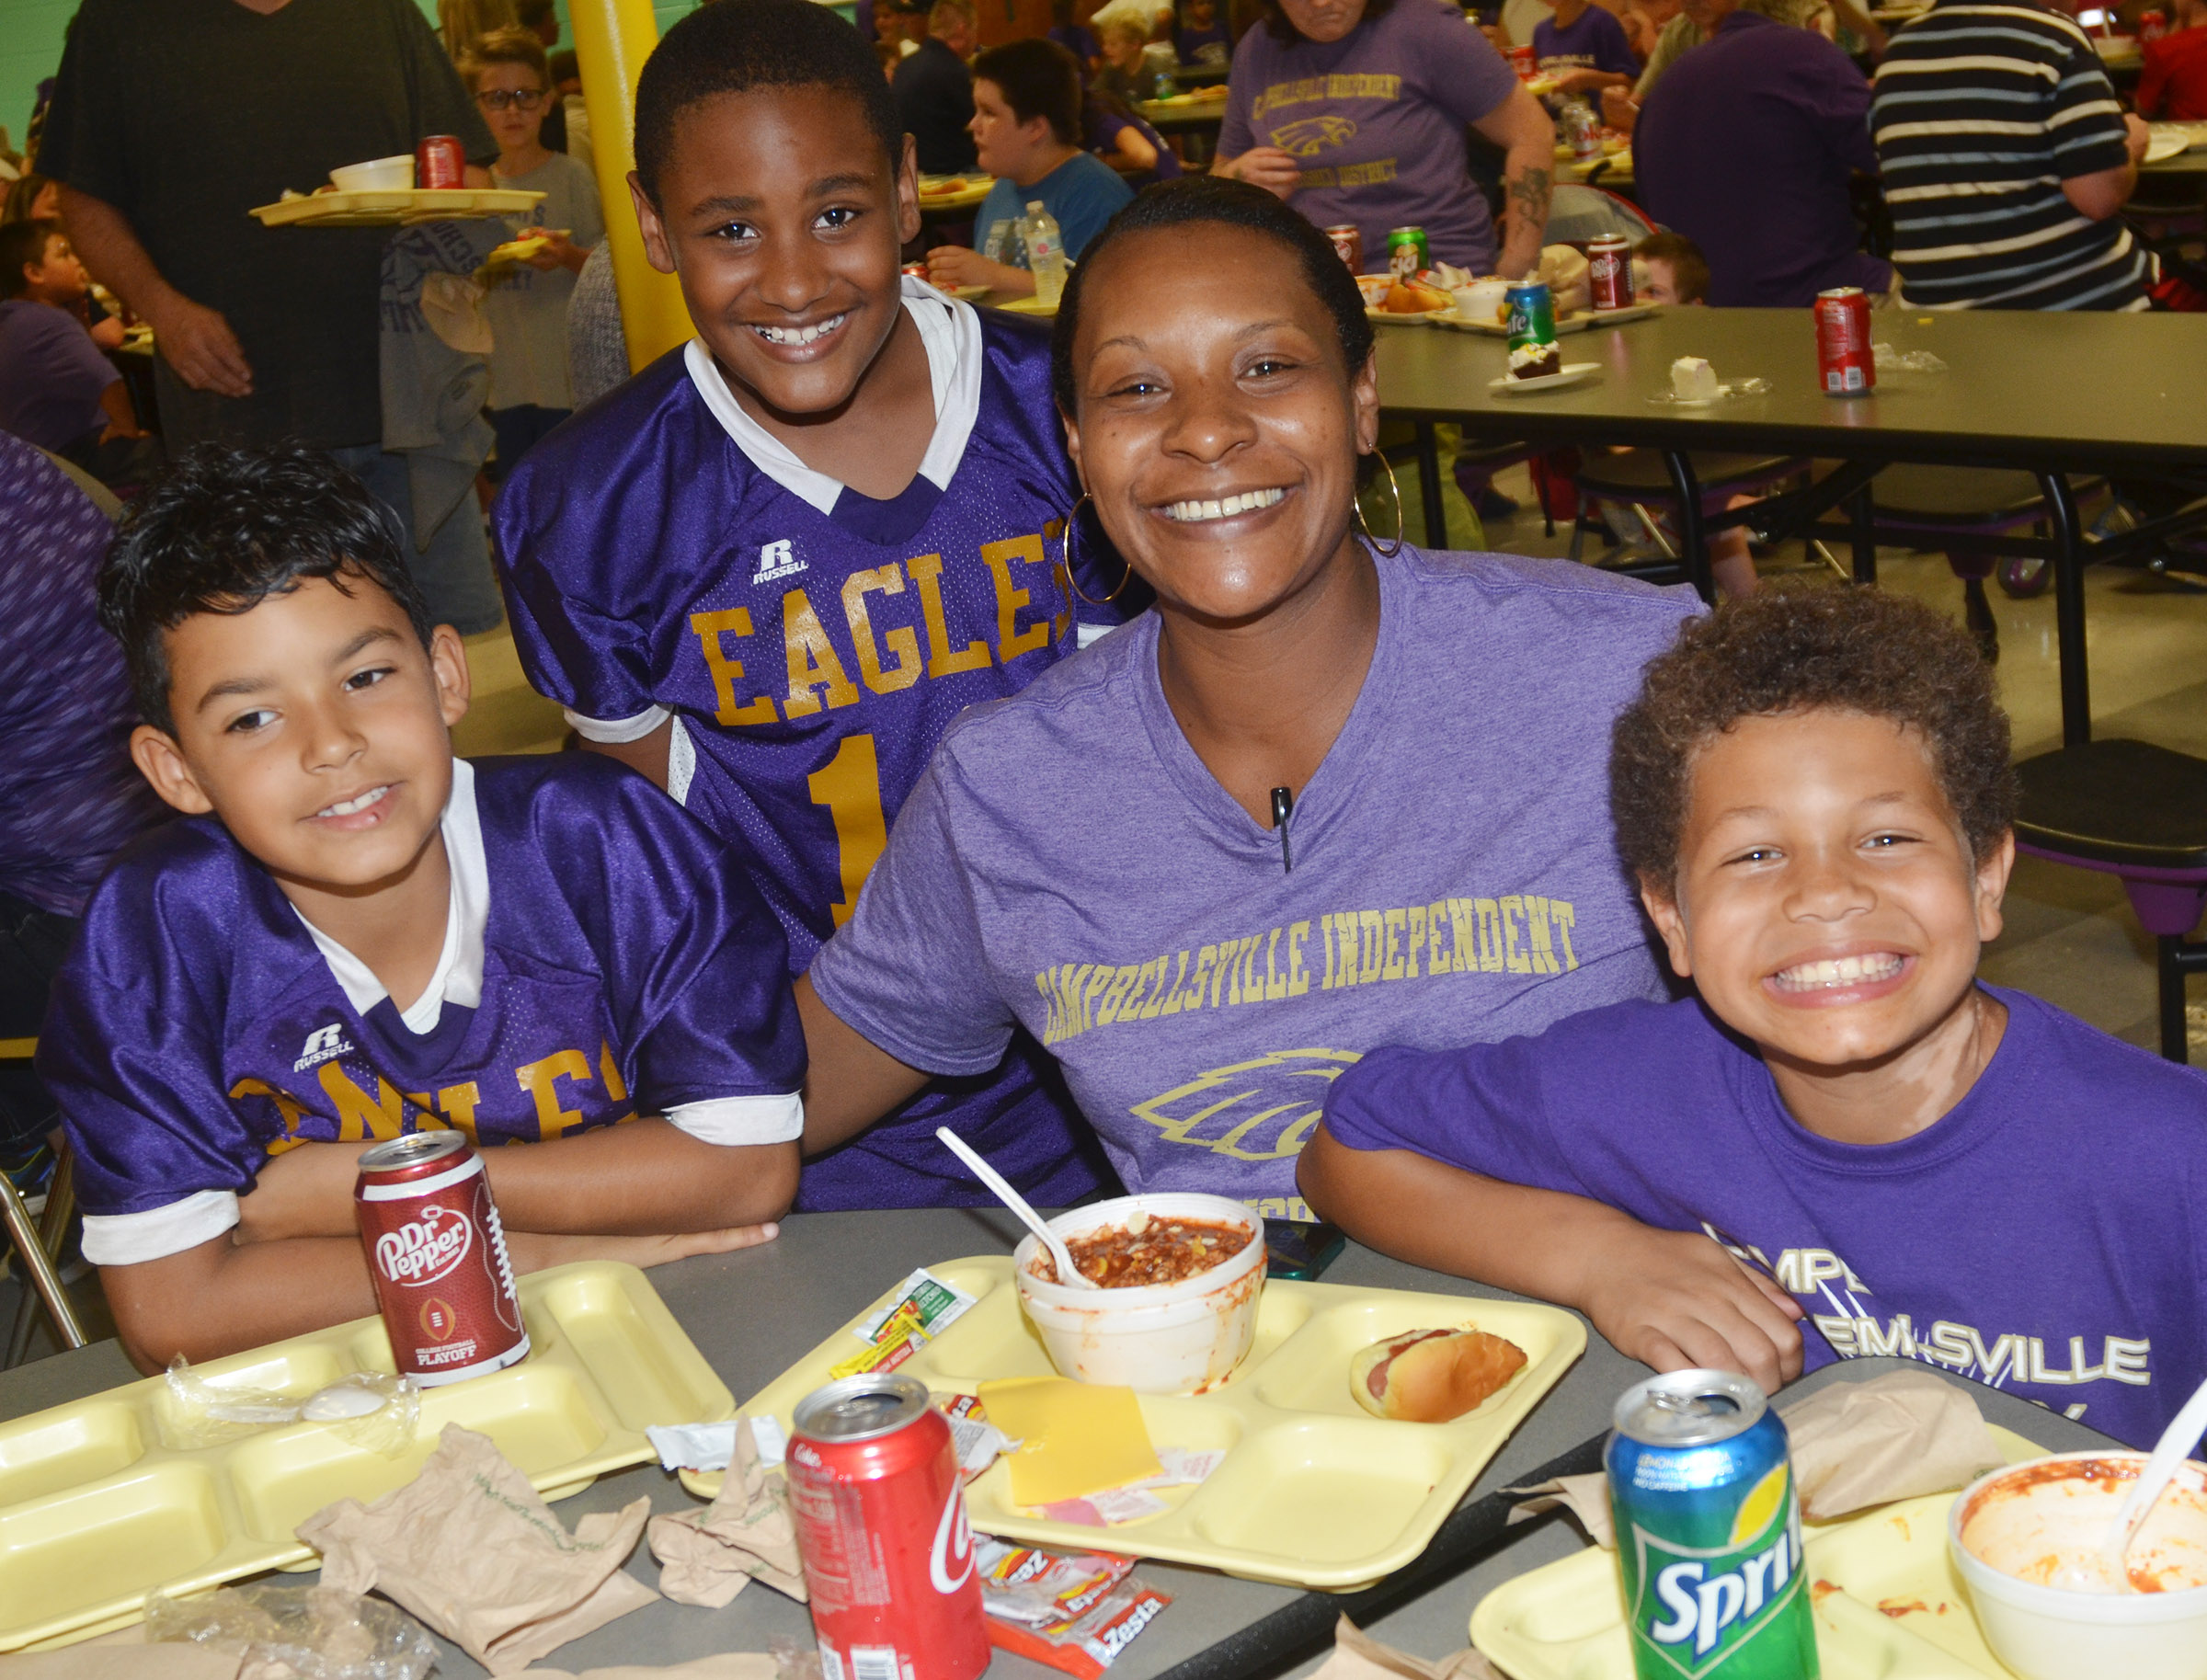 From left, CES second-grader Rizzo McKenzie and his brother fourth-grader Shaiden Calhoun pose for a photo with their mother, Chanda Calhoun, and their cousin Tristen Williams, a second-grader, as they eat chili.